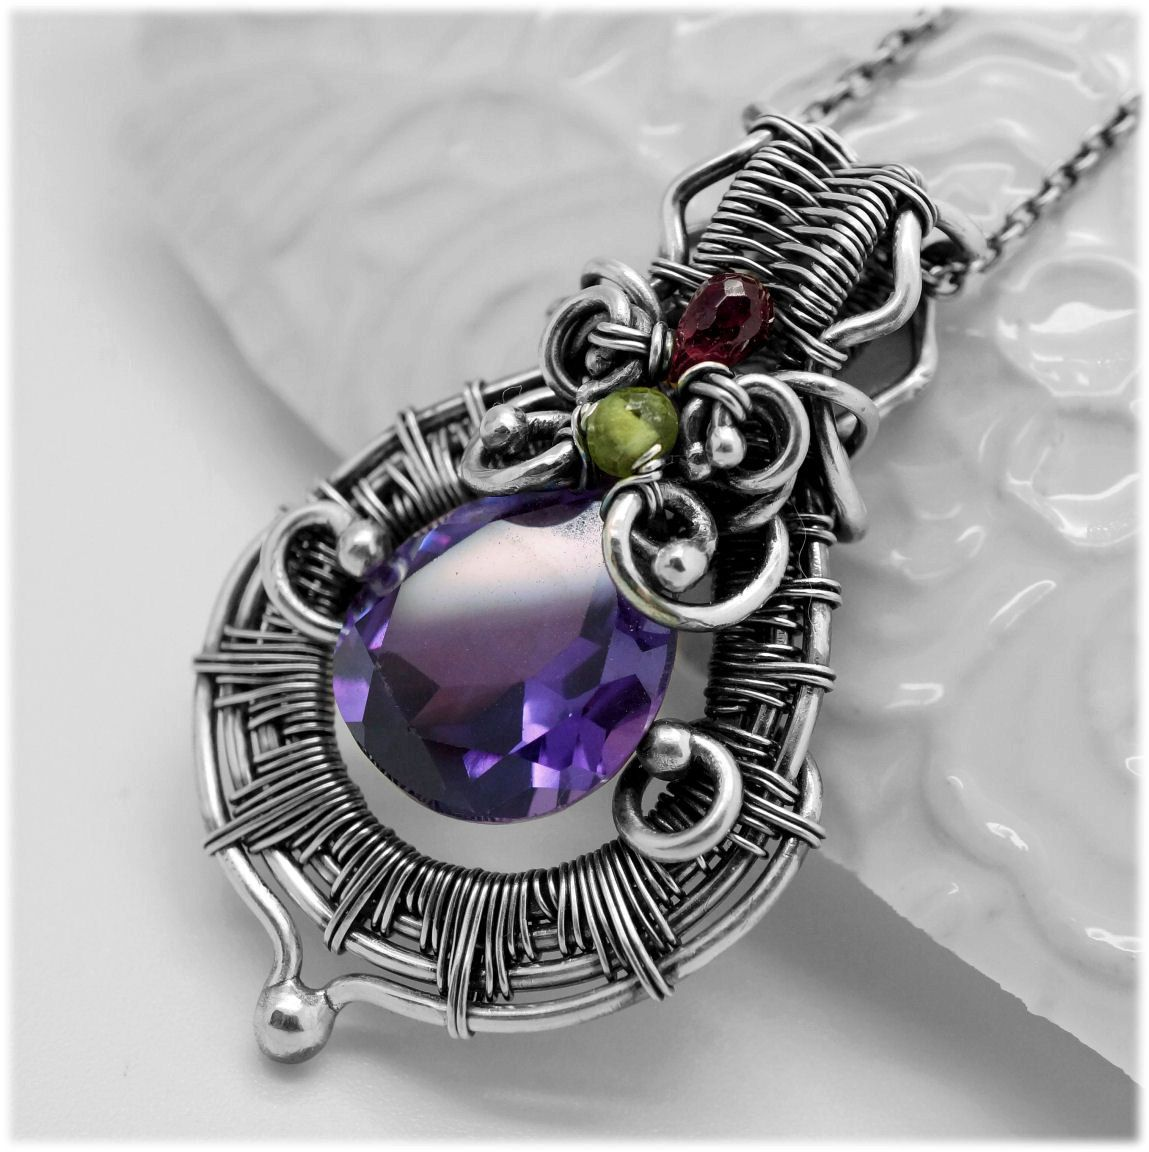 Heady wire wrap pendant wire wrapped pendant with alexandrite heady wire wrap pendant wire wrapped pendant with alexandrite pendant with gemstones purple pendant silver necklace aloadofball Choice Image